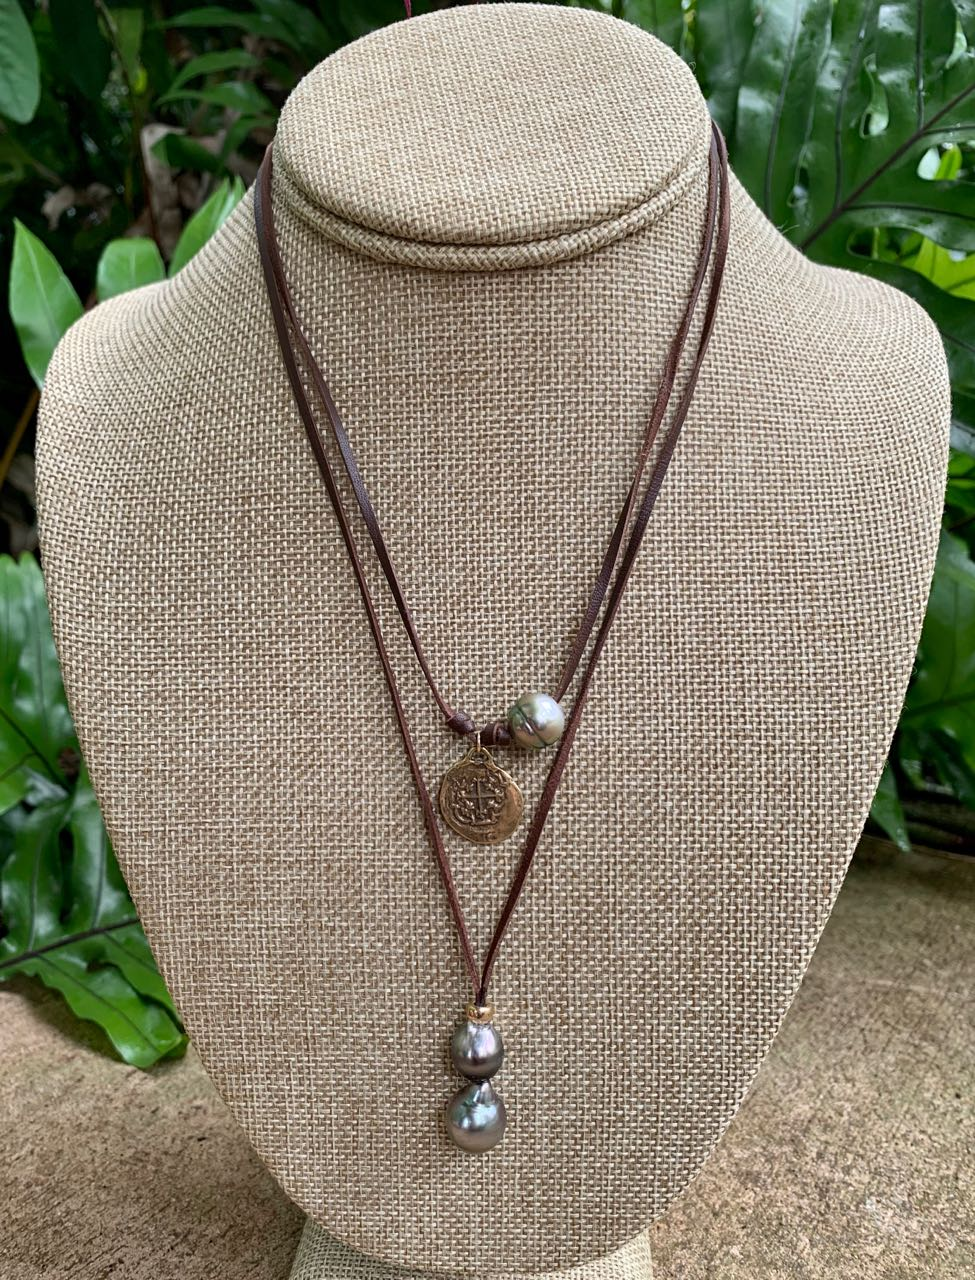 Fafaloha: Hana Necklace with Four Tahitian Pearls & Ancient Coin